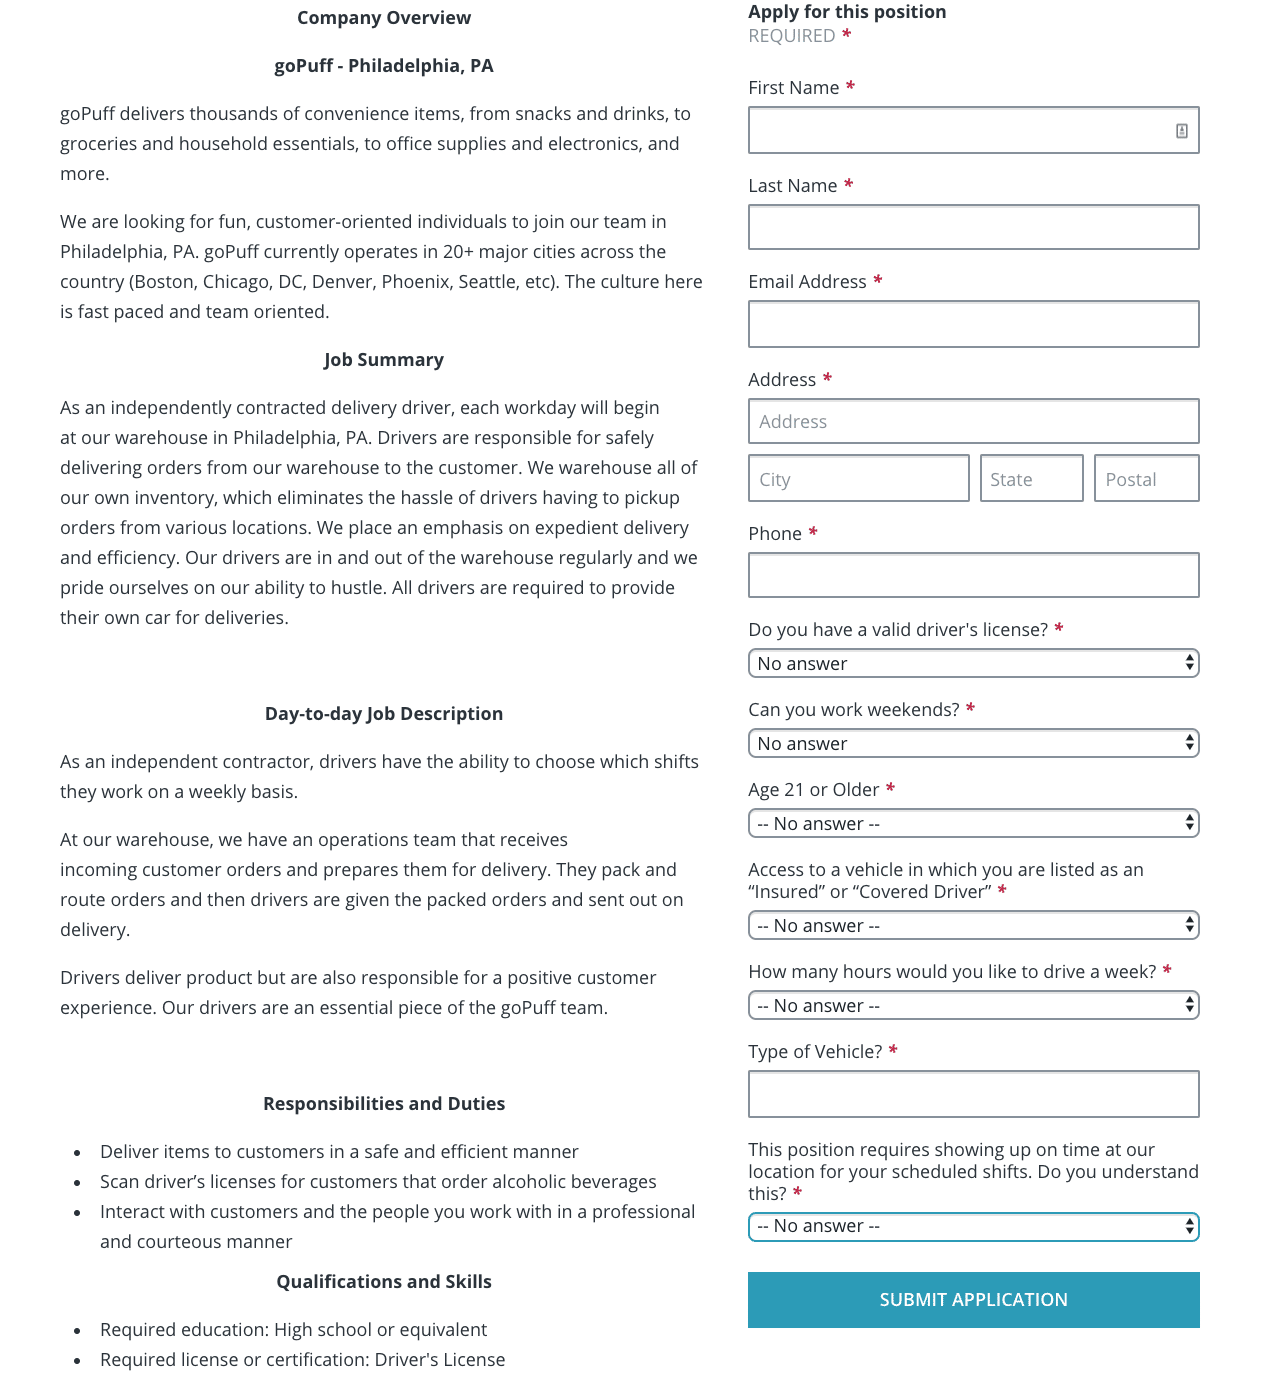 GoPuff Driver Requirements: How to Become a GoPuff Driver